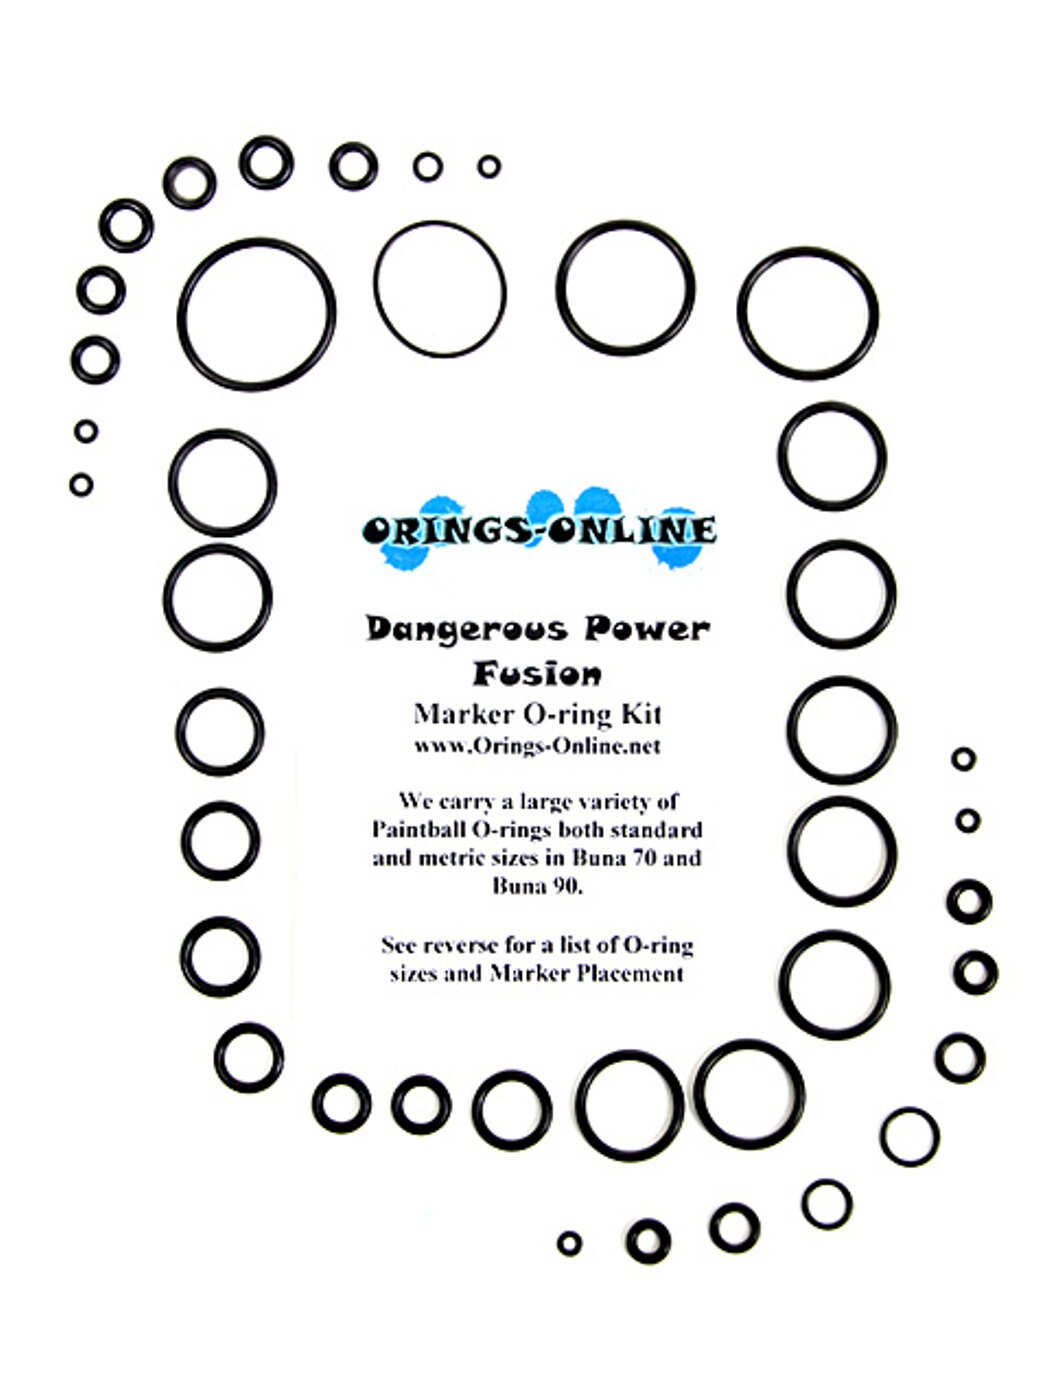 Dangerous Power Fusion Marker O-ring Kit